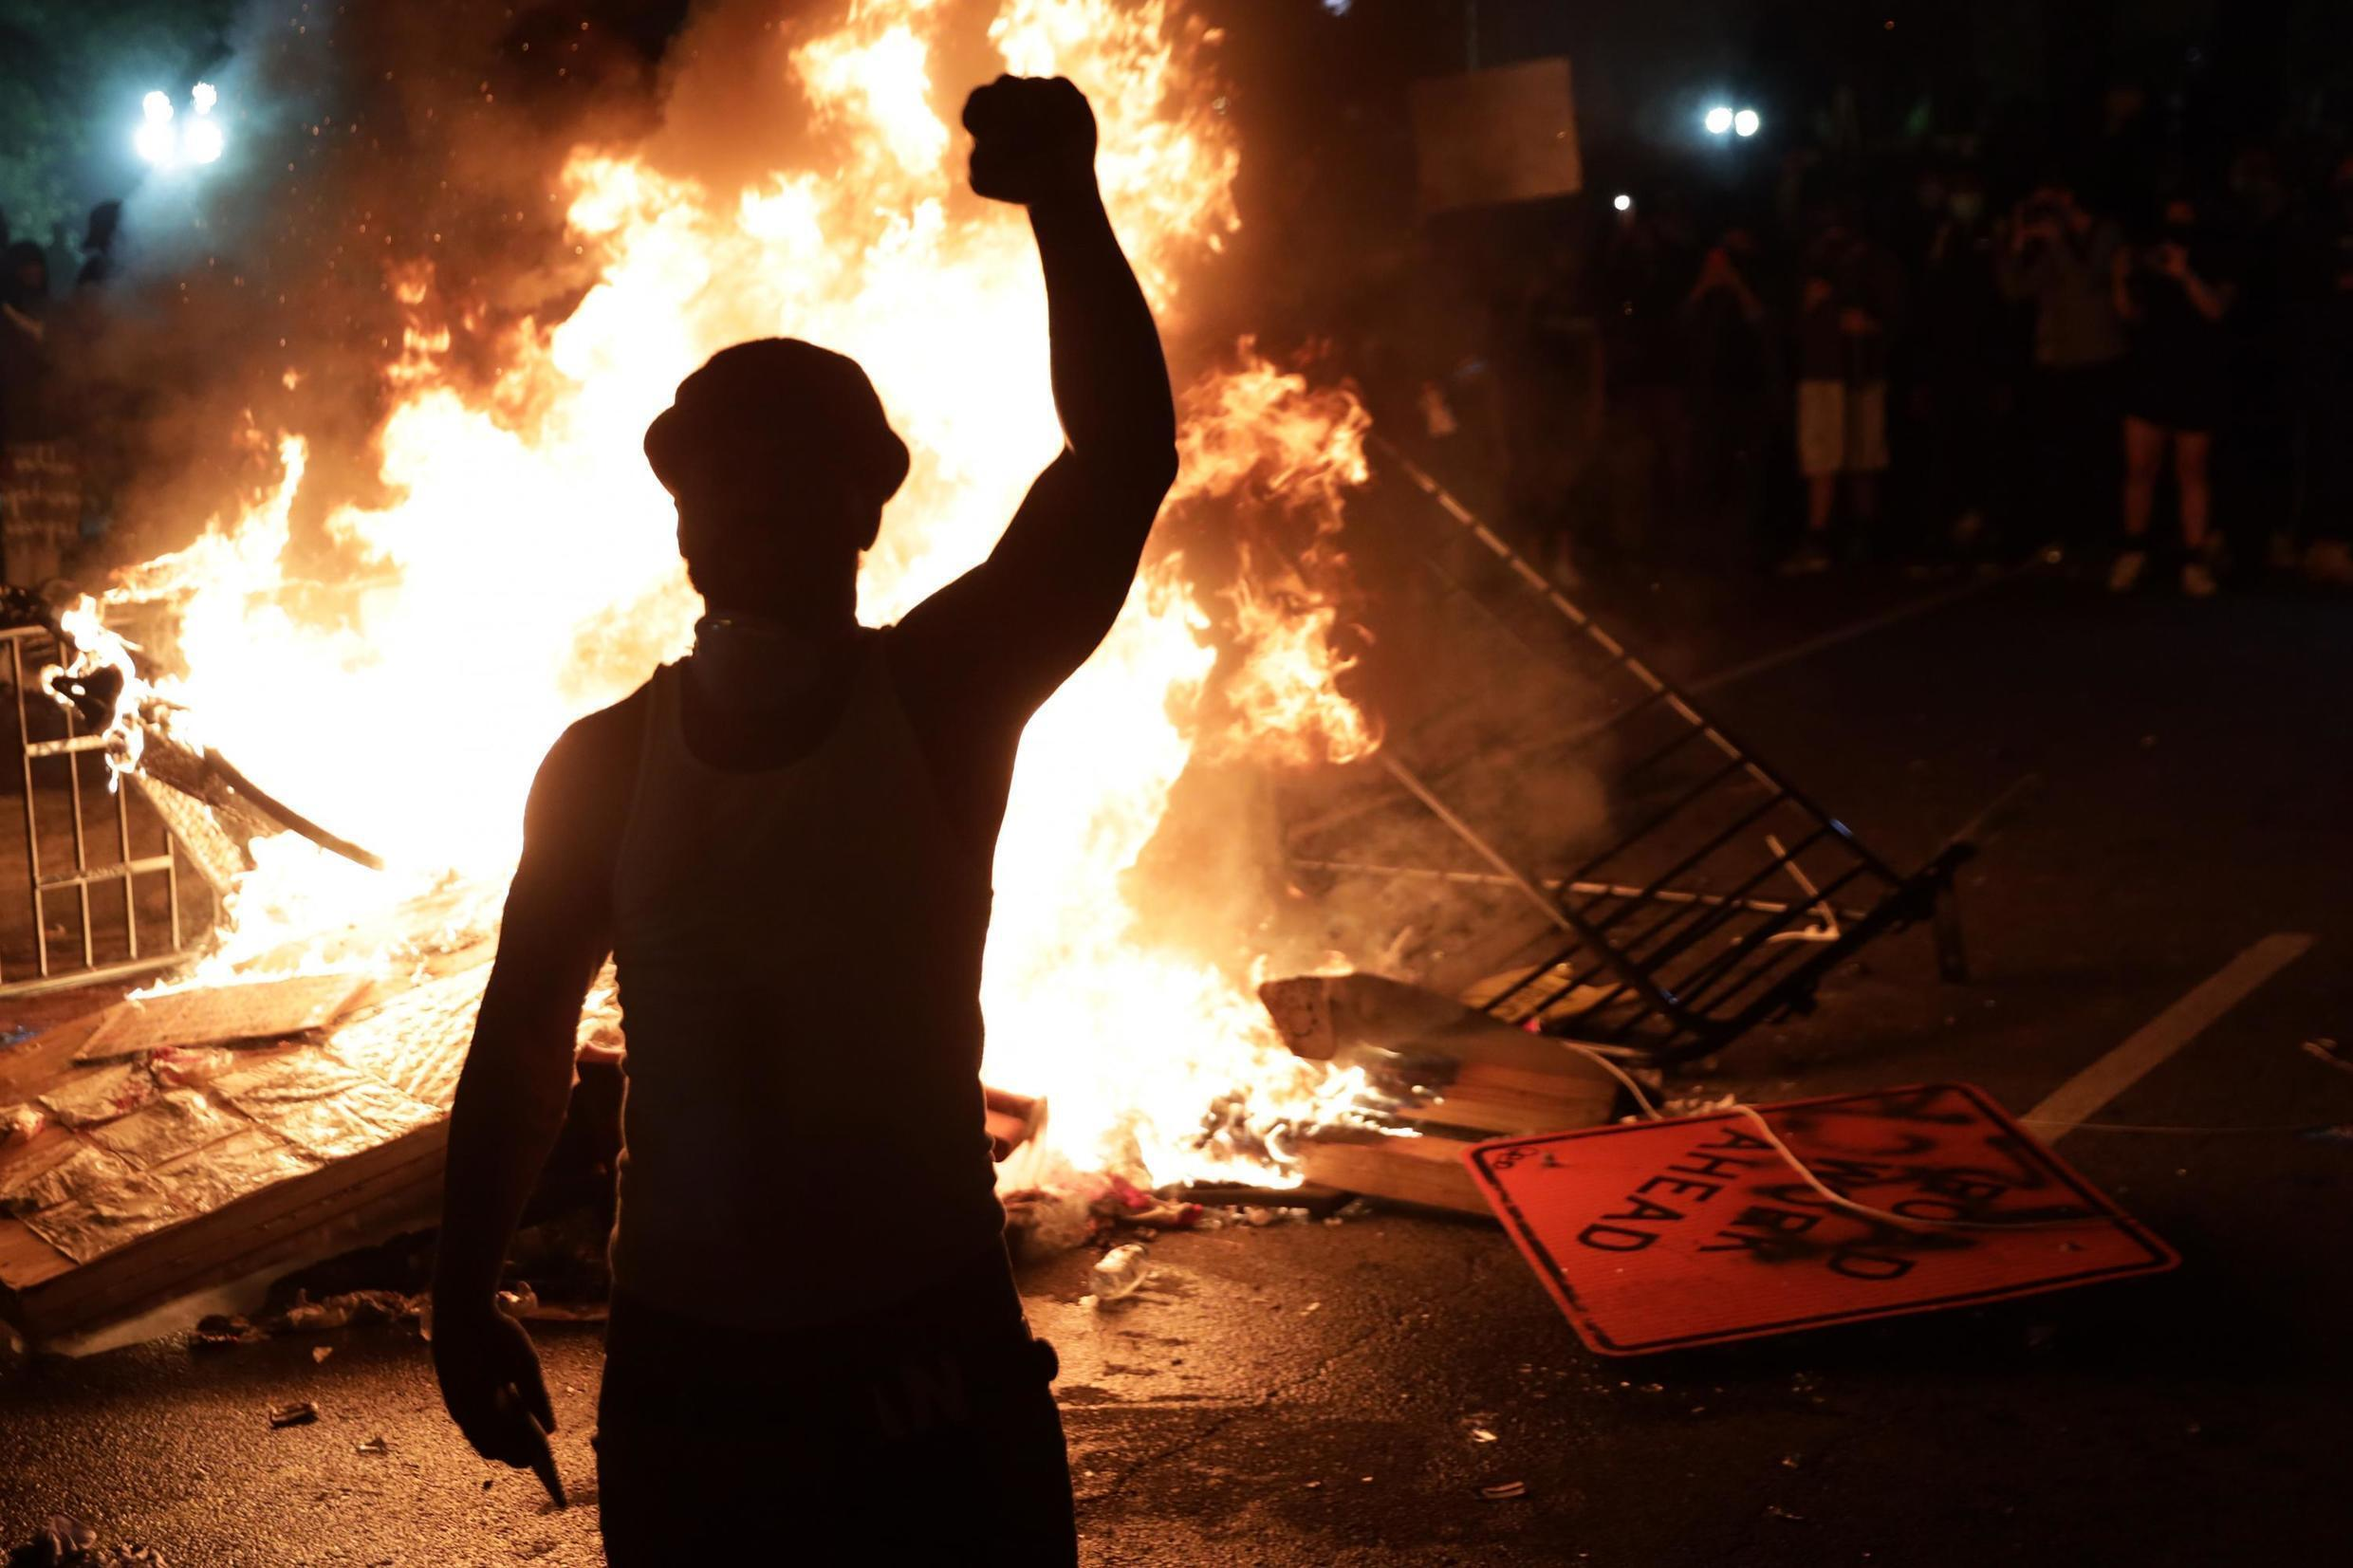 A protester raises a fist near a fire during a demonstration outside the White House over the death of George Floyd, a black man, at the hands of Minneapolis Police on 25 May.